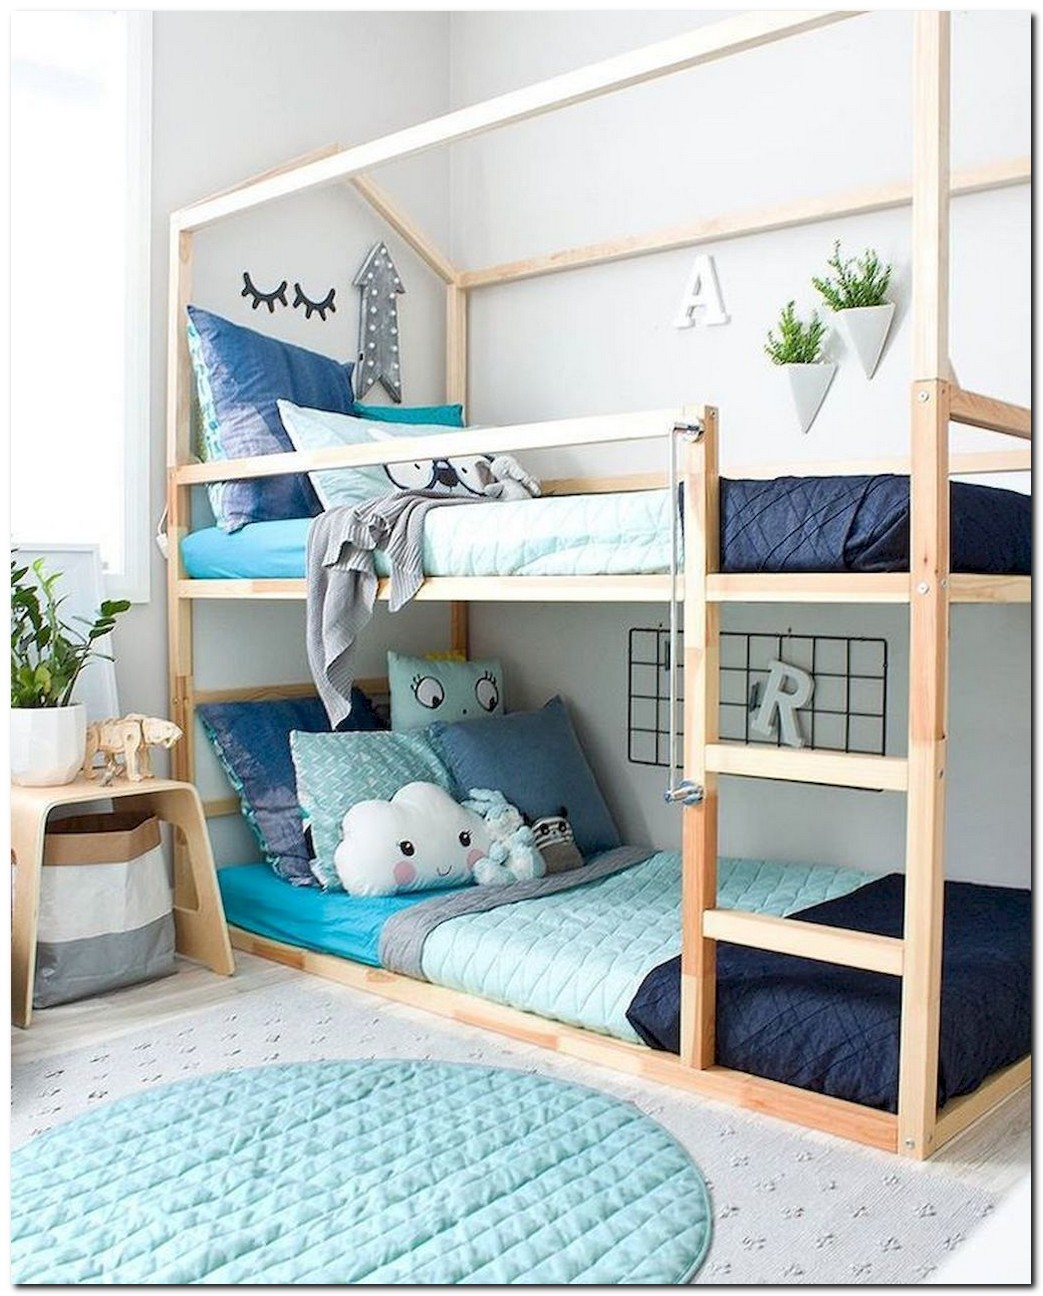 Beds for children choosing bunk beds for kids 8